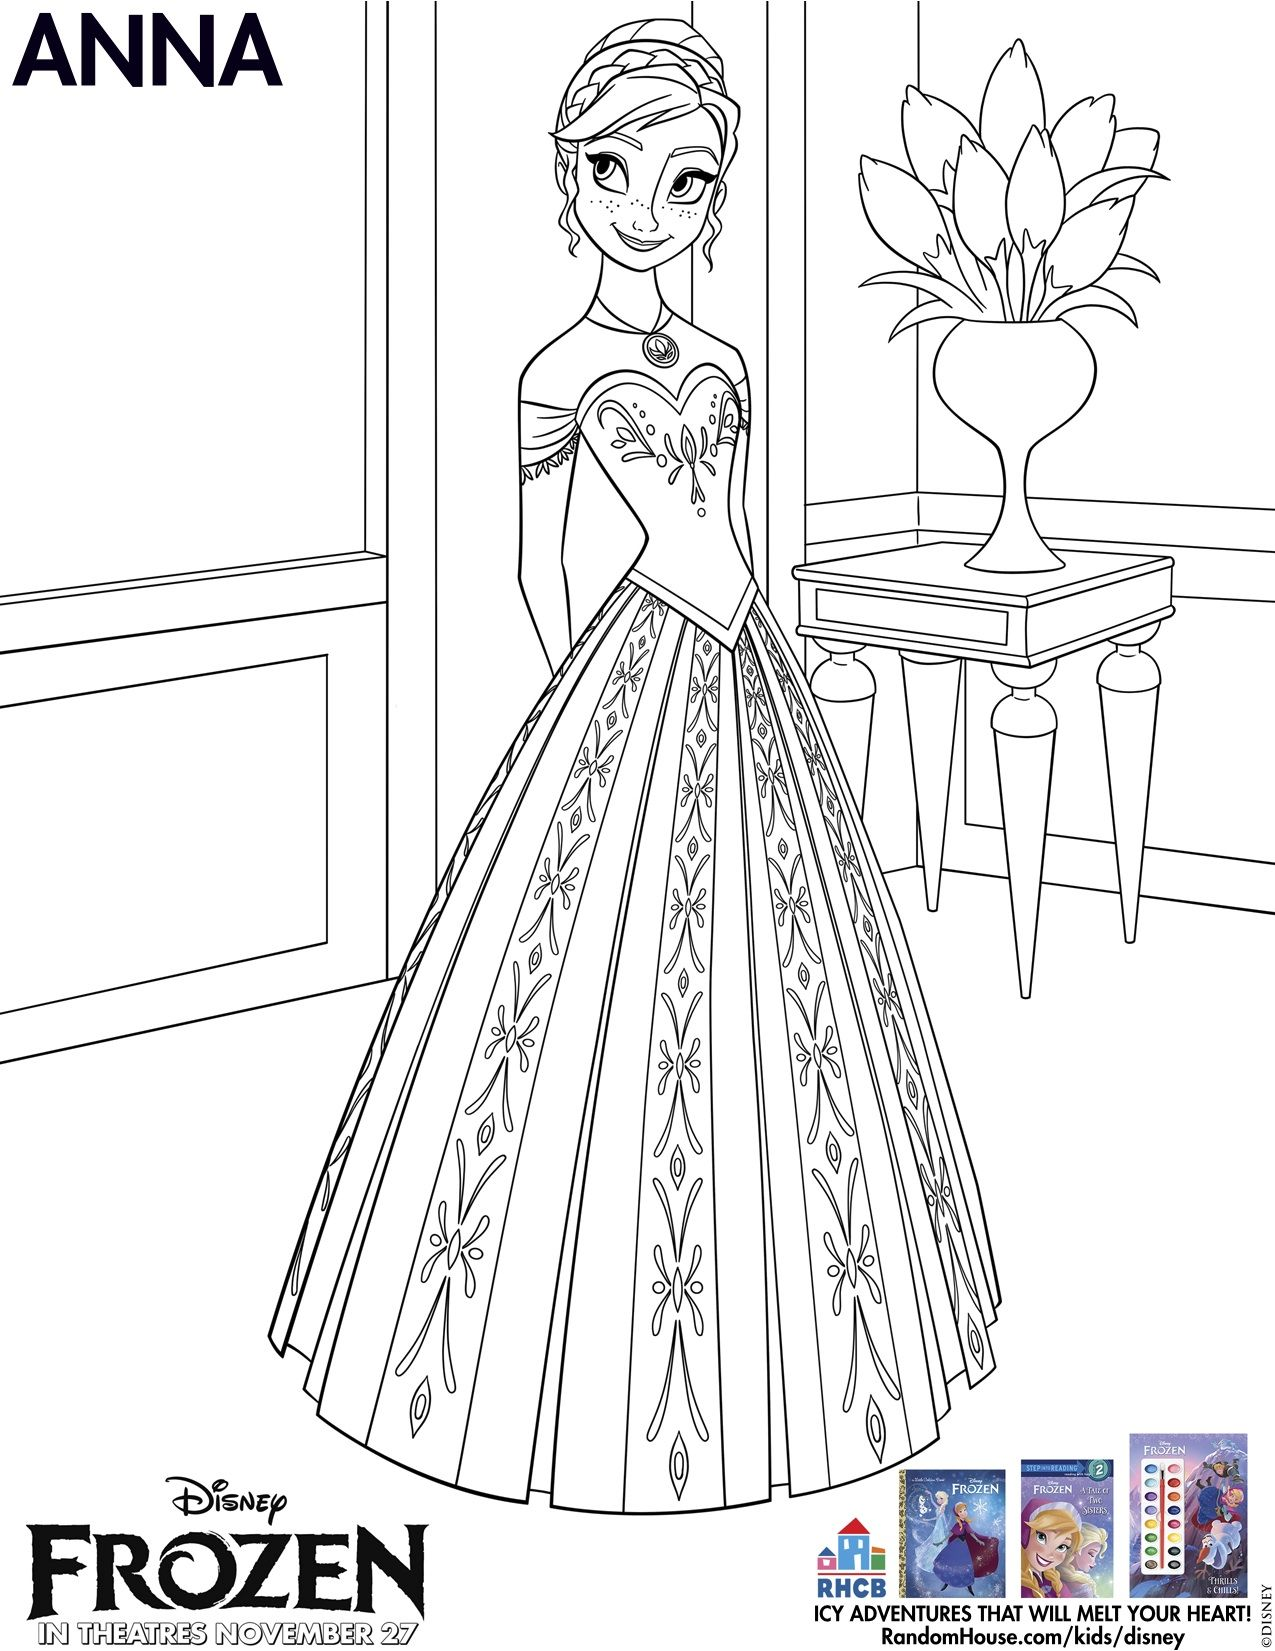 Disney S Frozen Coloring Pages And Printables For Kids Frozen Coloring Pages Frozen Coloring Sheets Frozen Coloring